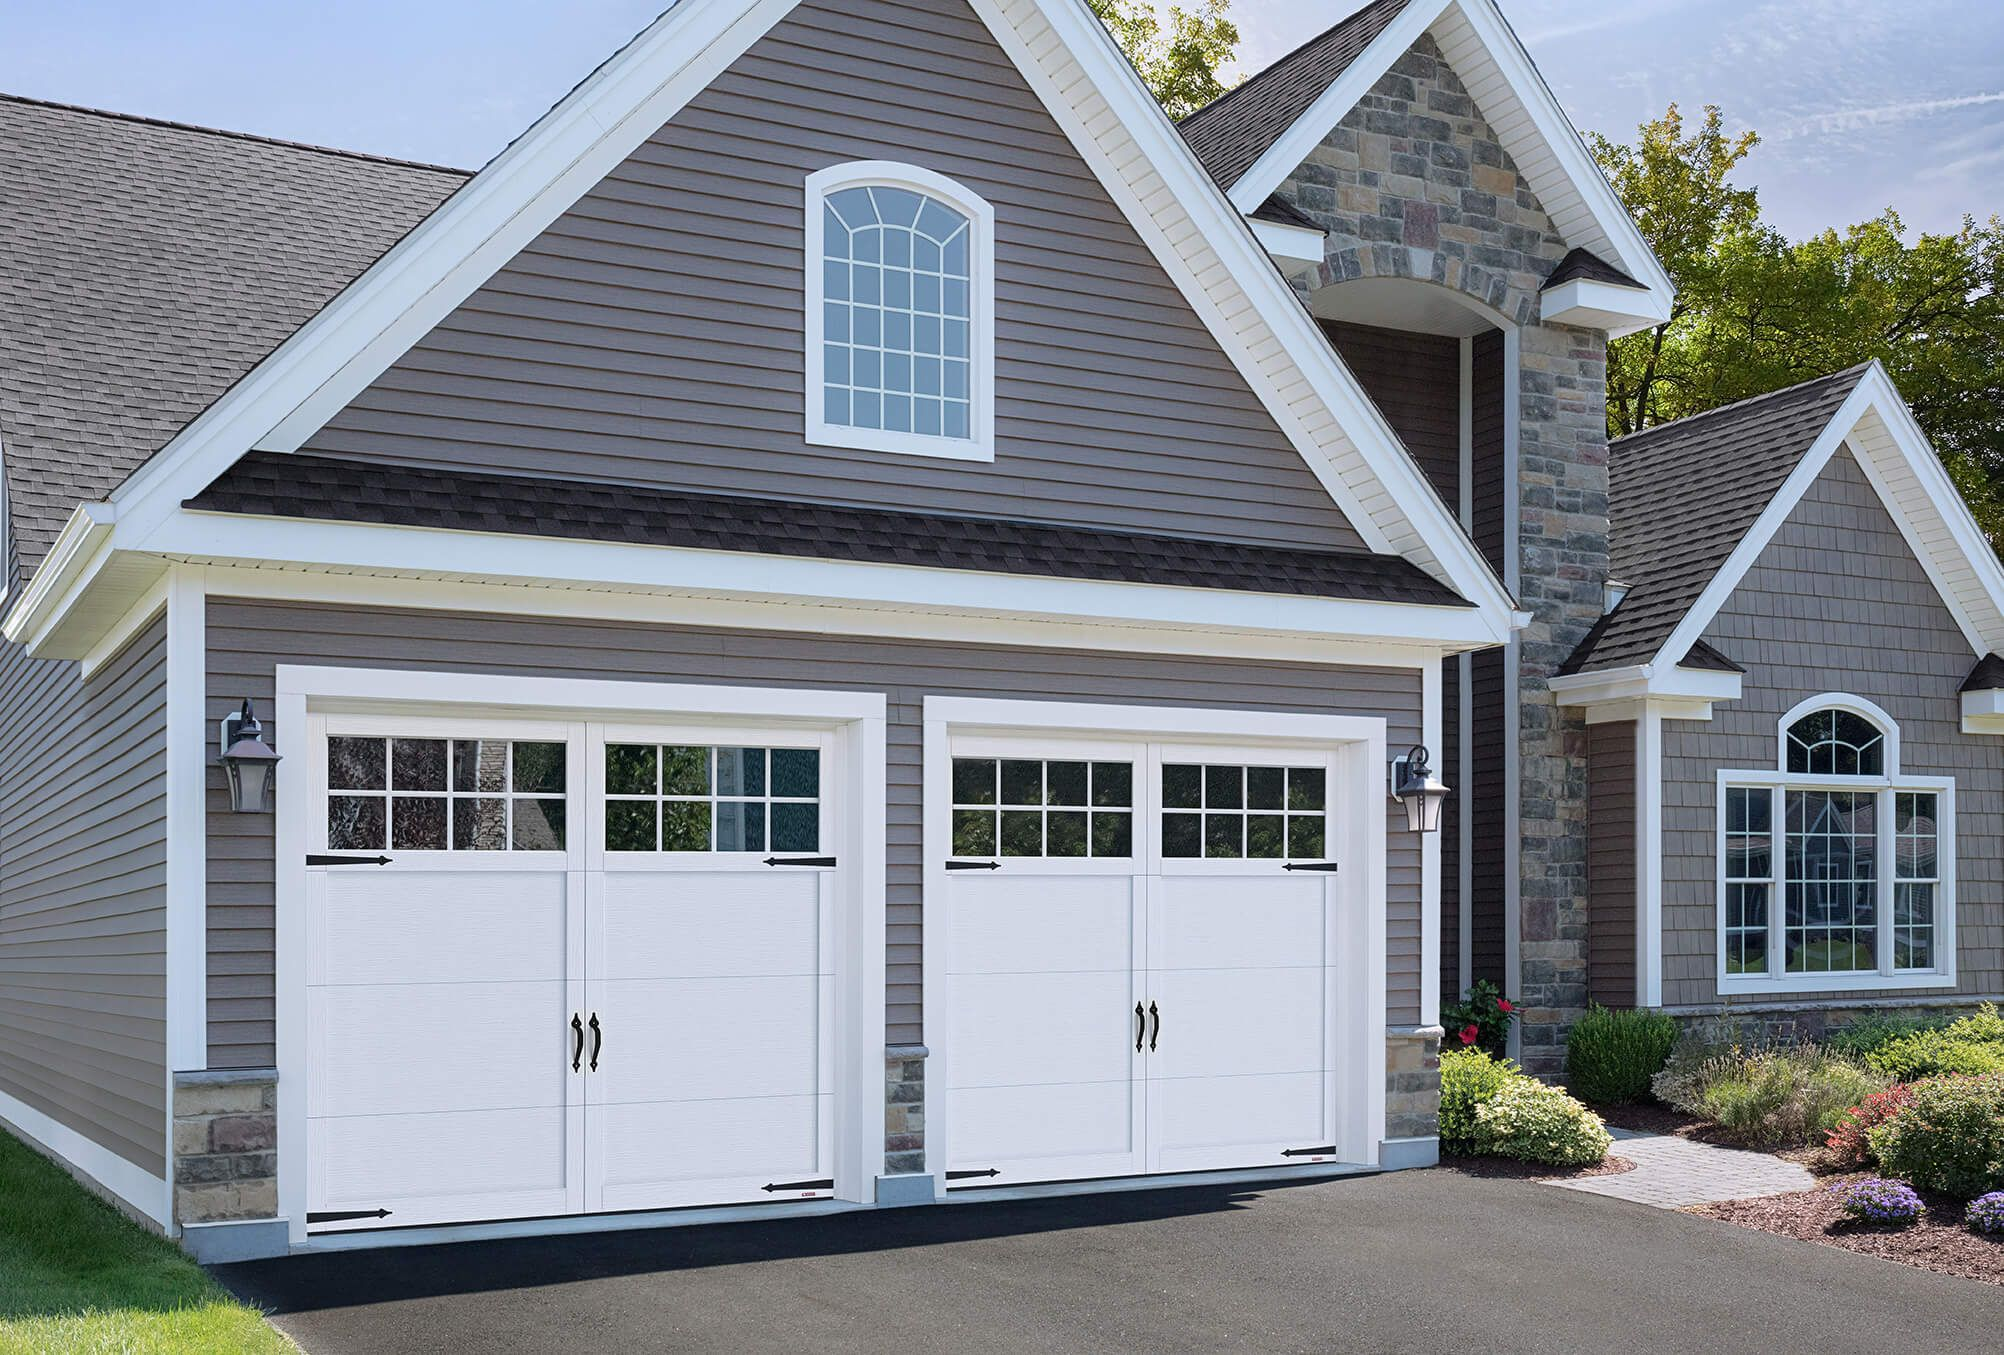 Garaga Princeton P 11 9 X 8 Ice White Doors And Overlays 8 Lite Panoramic Windows Garage Door Styles Garage Doors Garage Door Design